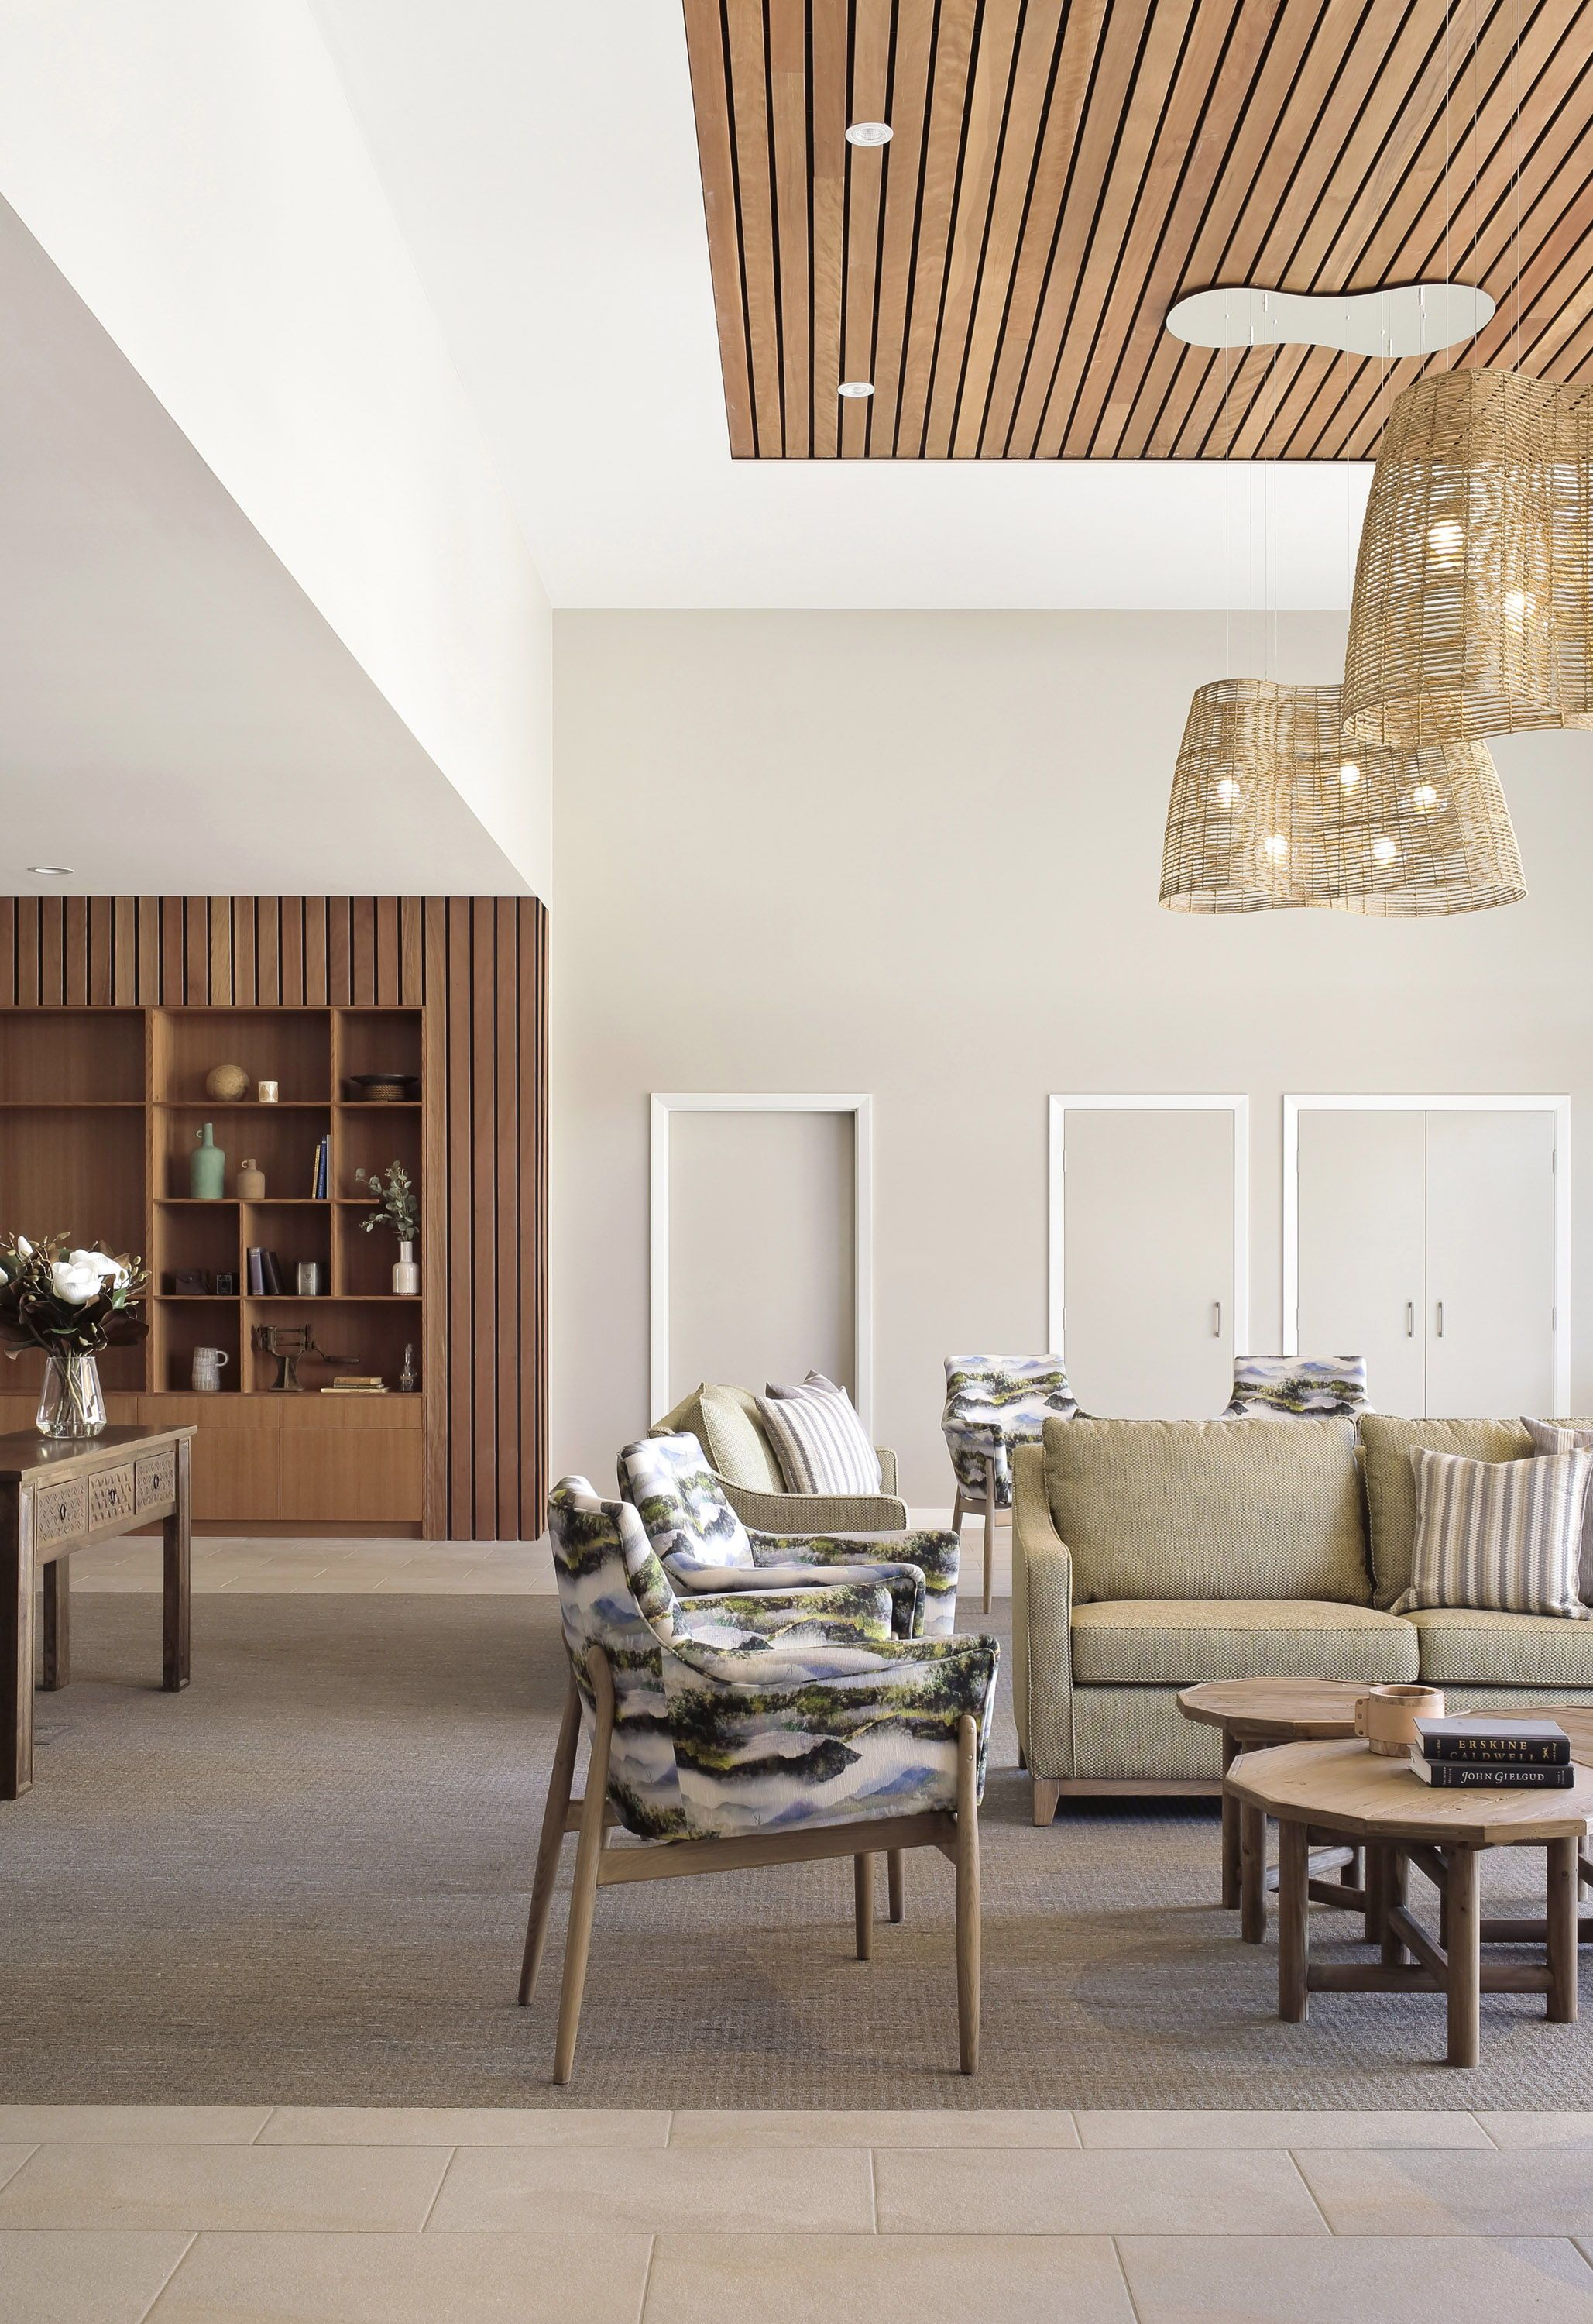 Living Room Interior Design Pdf: This Aged Care Facility Has Been Designed To Not Only